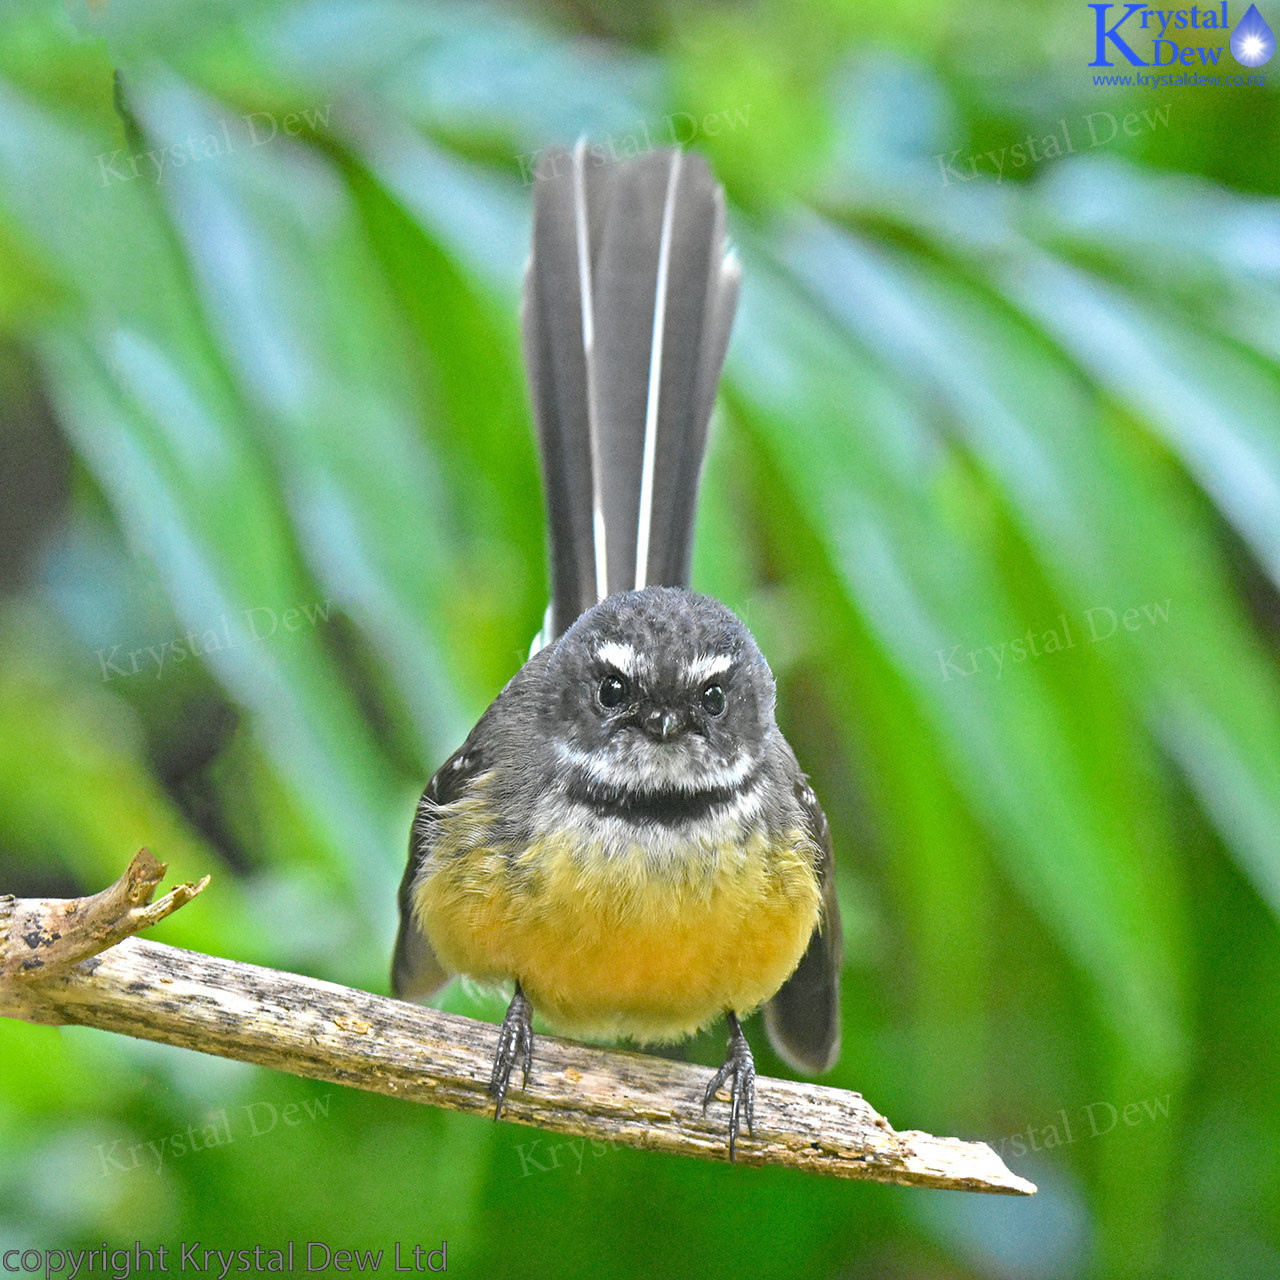 0cc7a2ca712 Fantail (Piwakawaka) Perched In The Garden